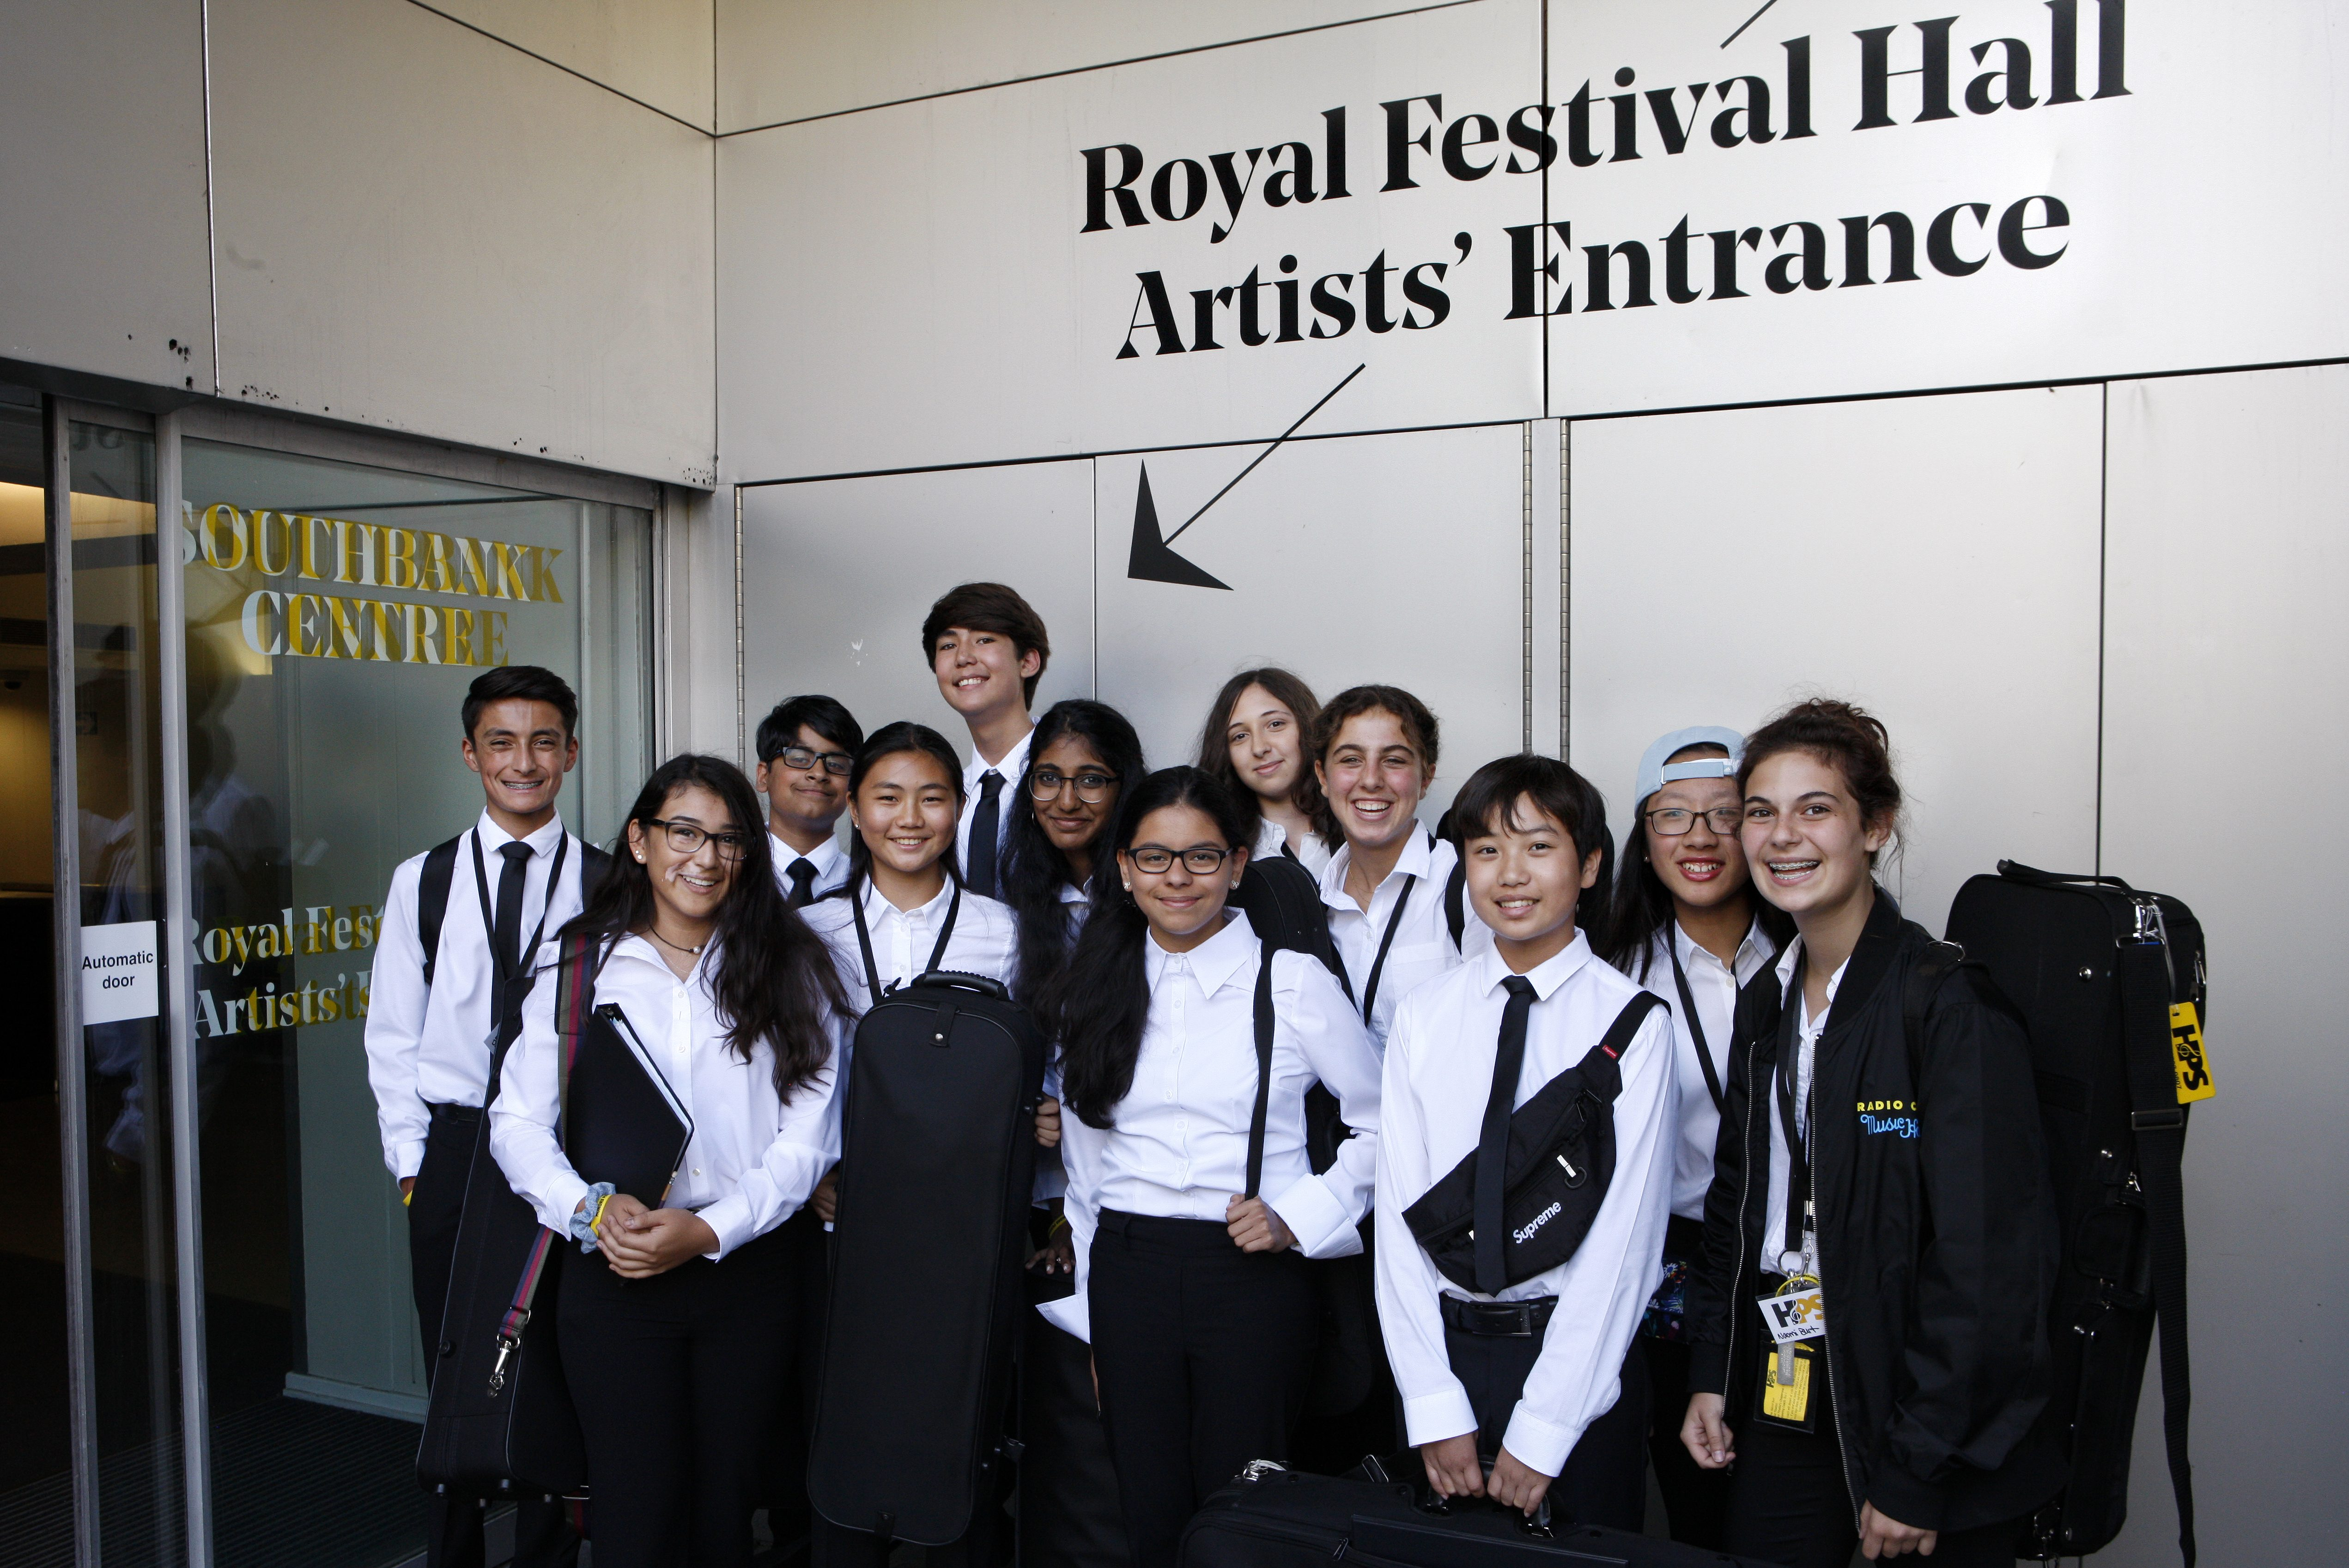 Royal Festival Hall Artists